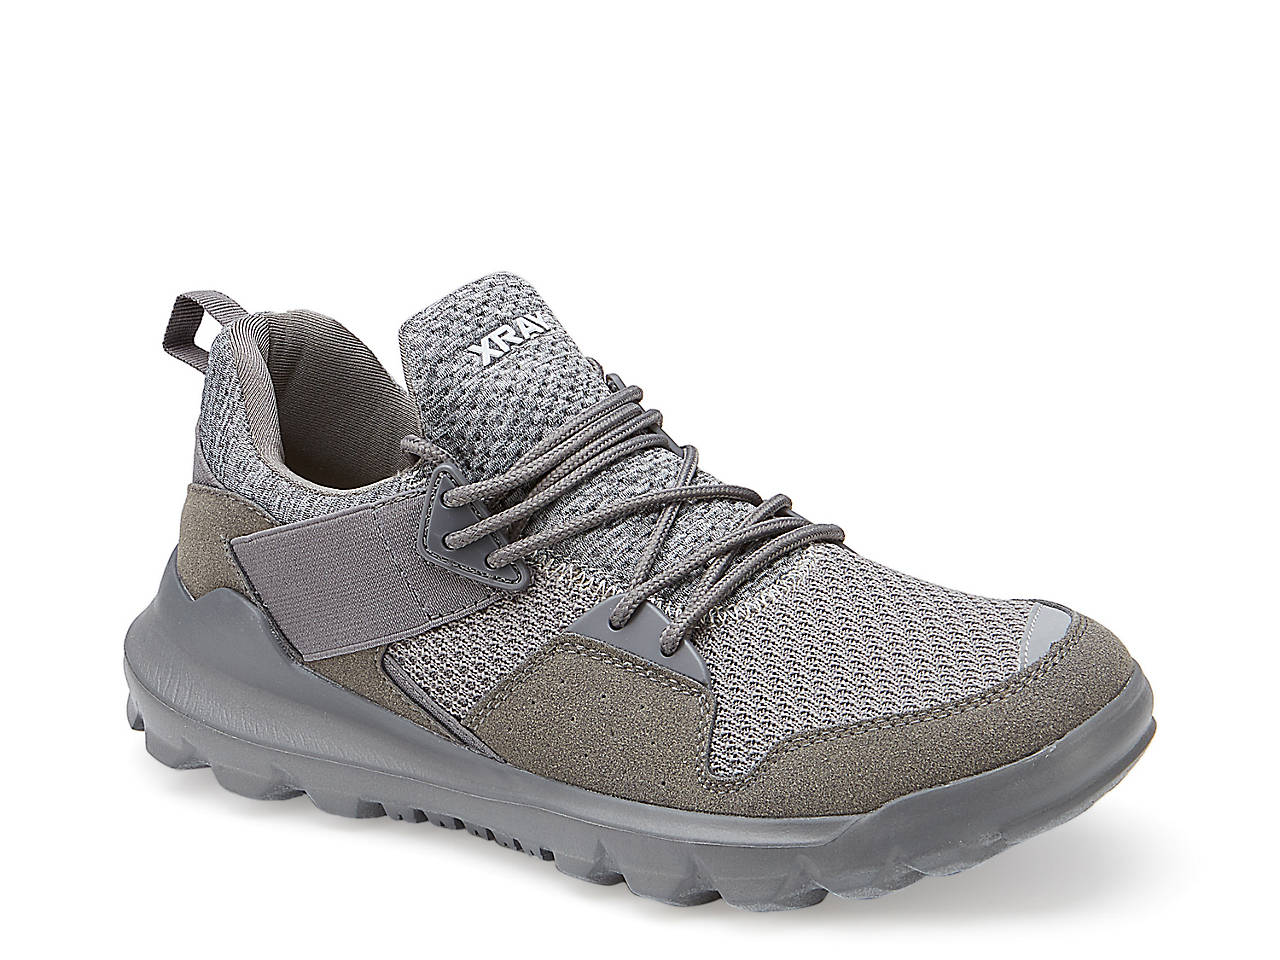 from china for sale Xray Trivor Men's Sneakers tumblr cheap online VqzbyBM